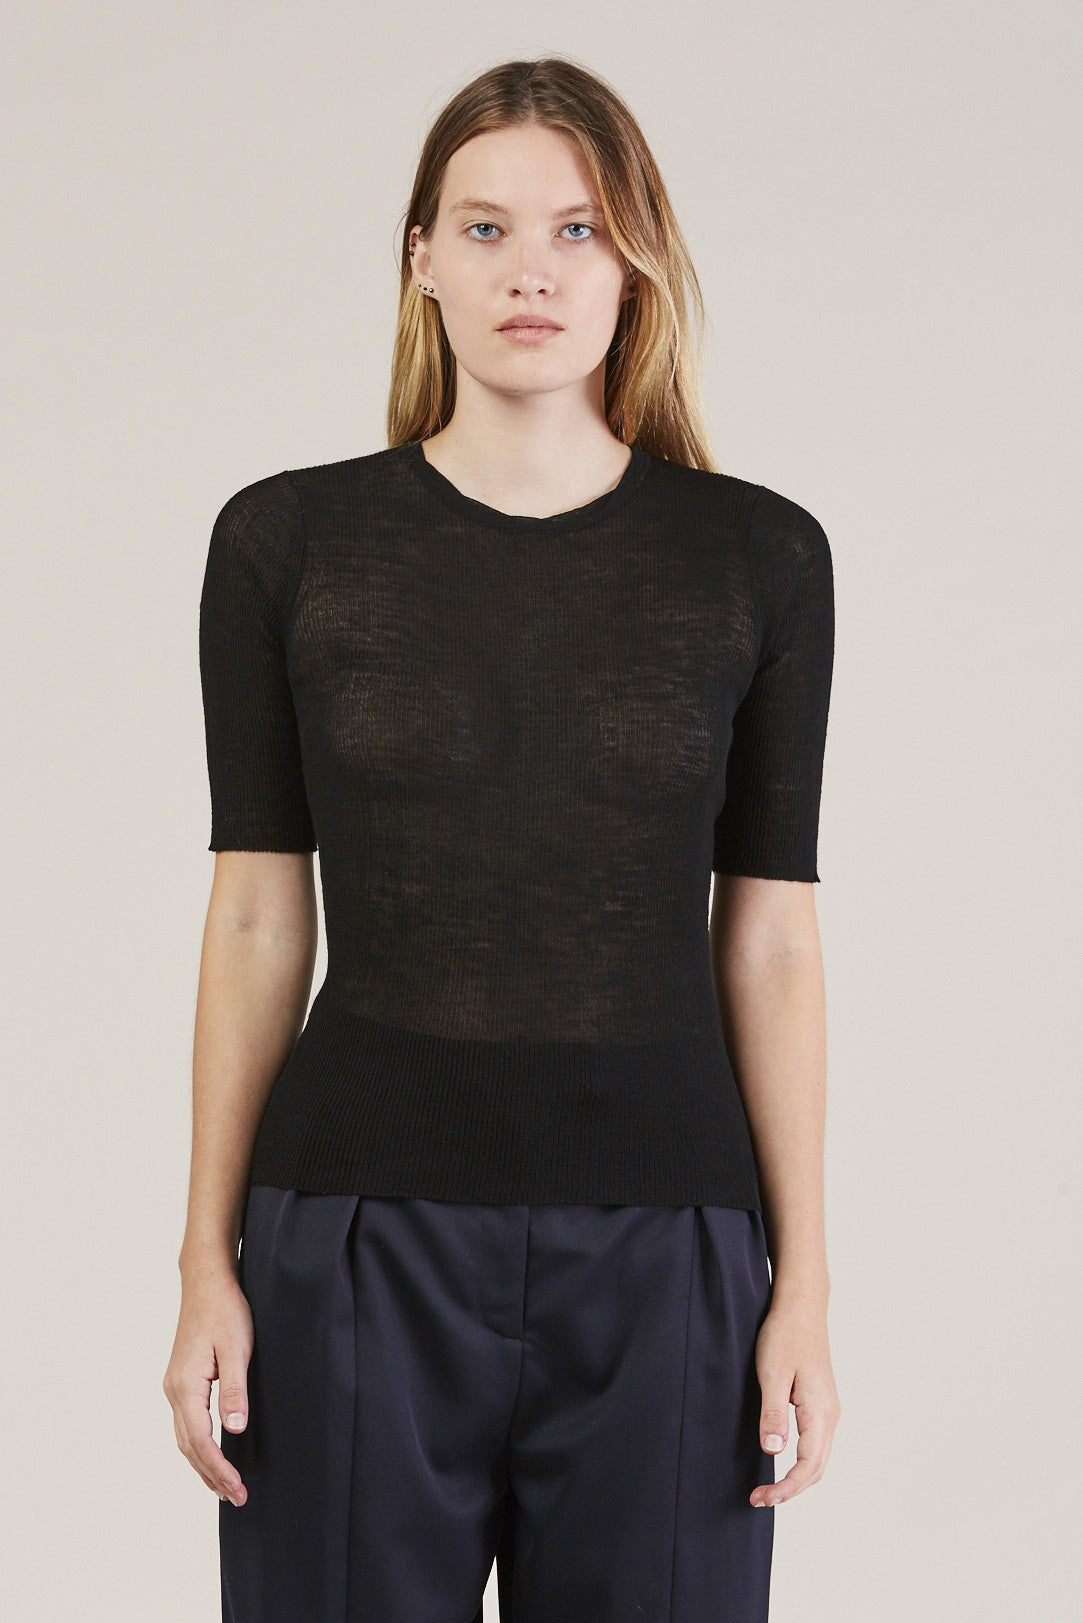 HALF SLEEVE TOP, Black by Creatures of Comfort @ Kick Pleat - 1